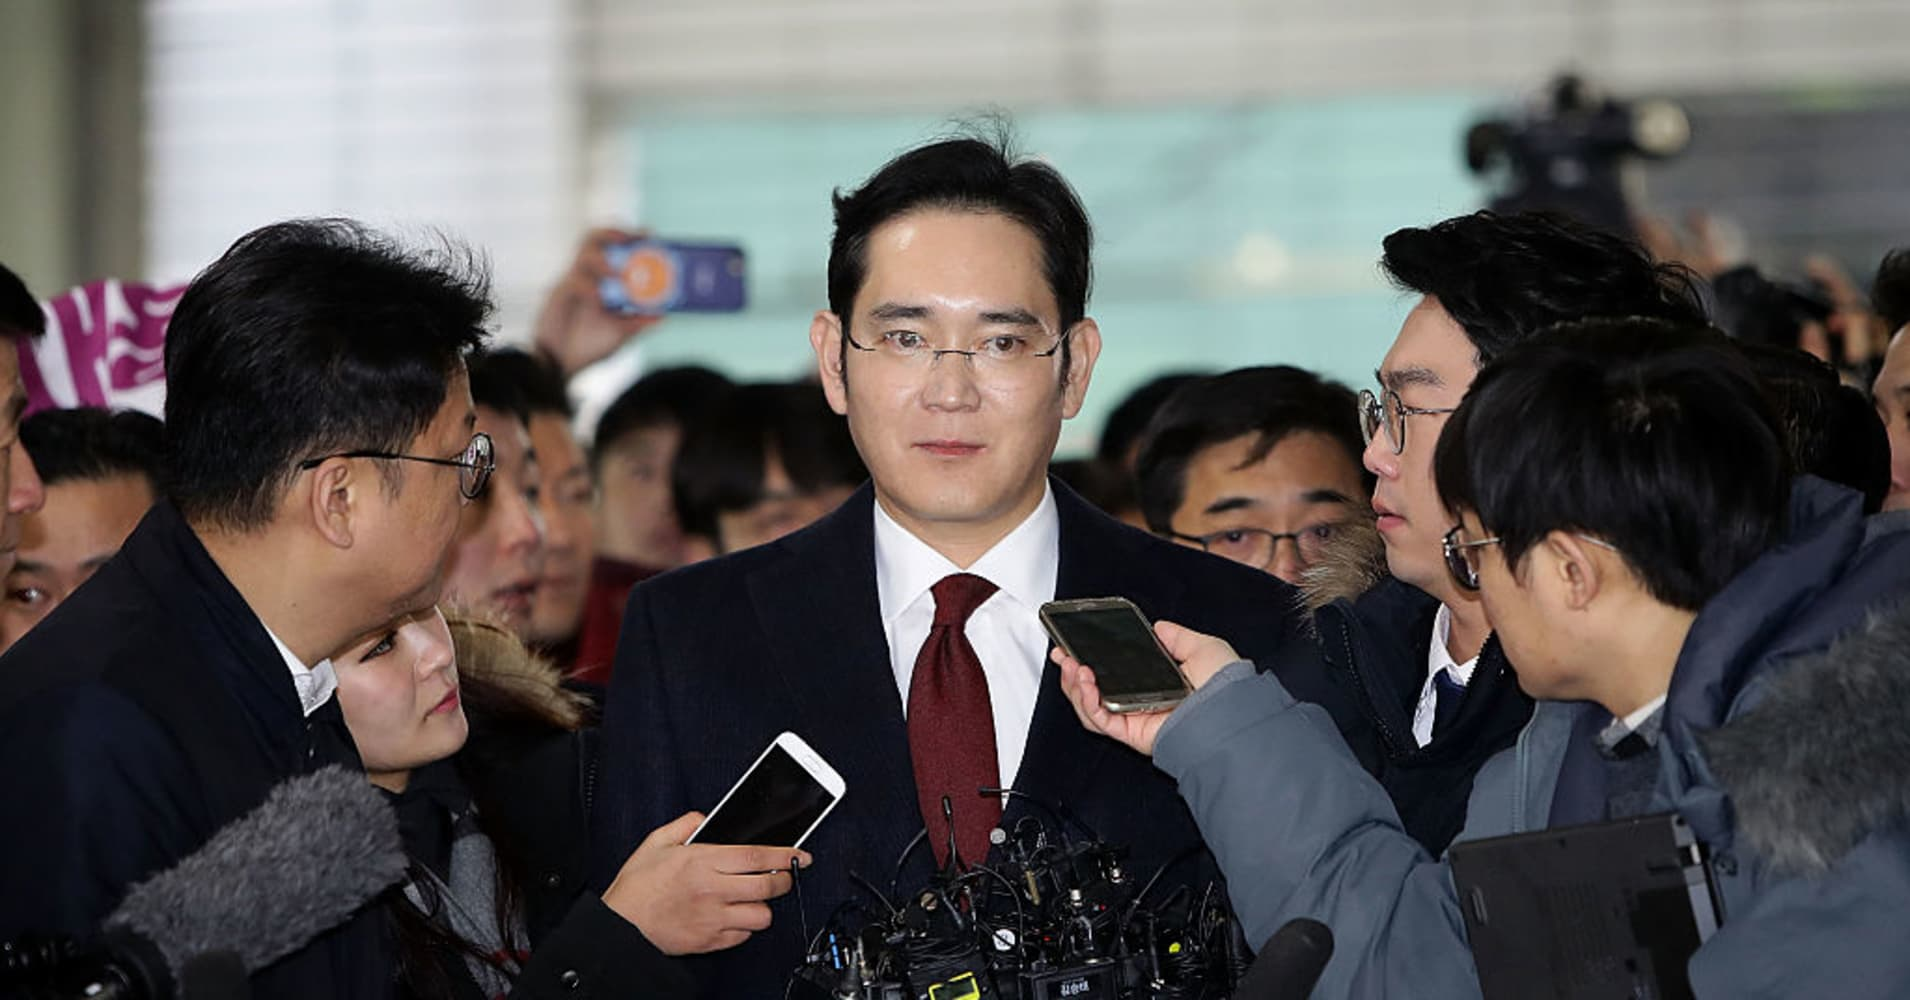 Samsung leader Lee arrives for questioning by prosecutors